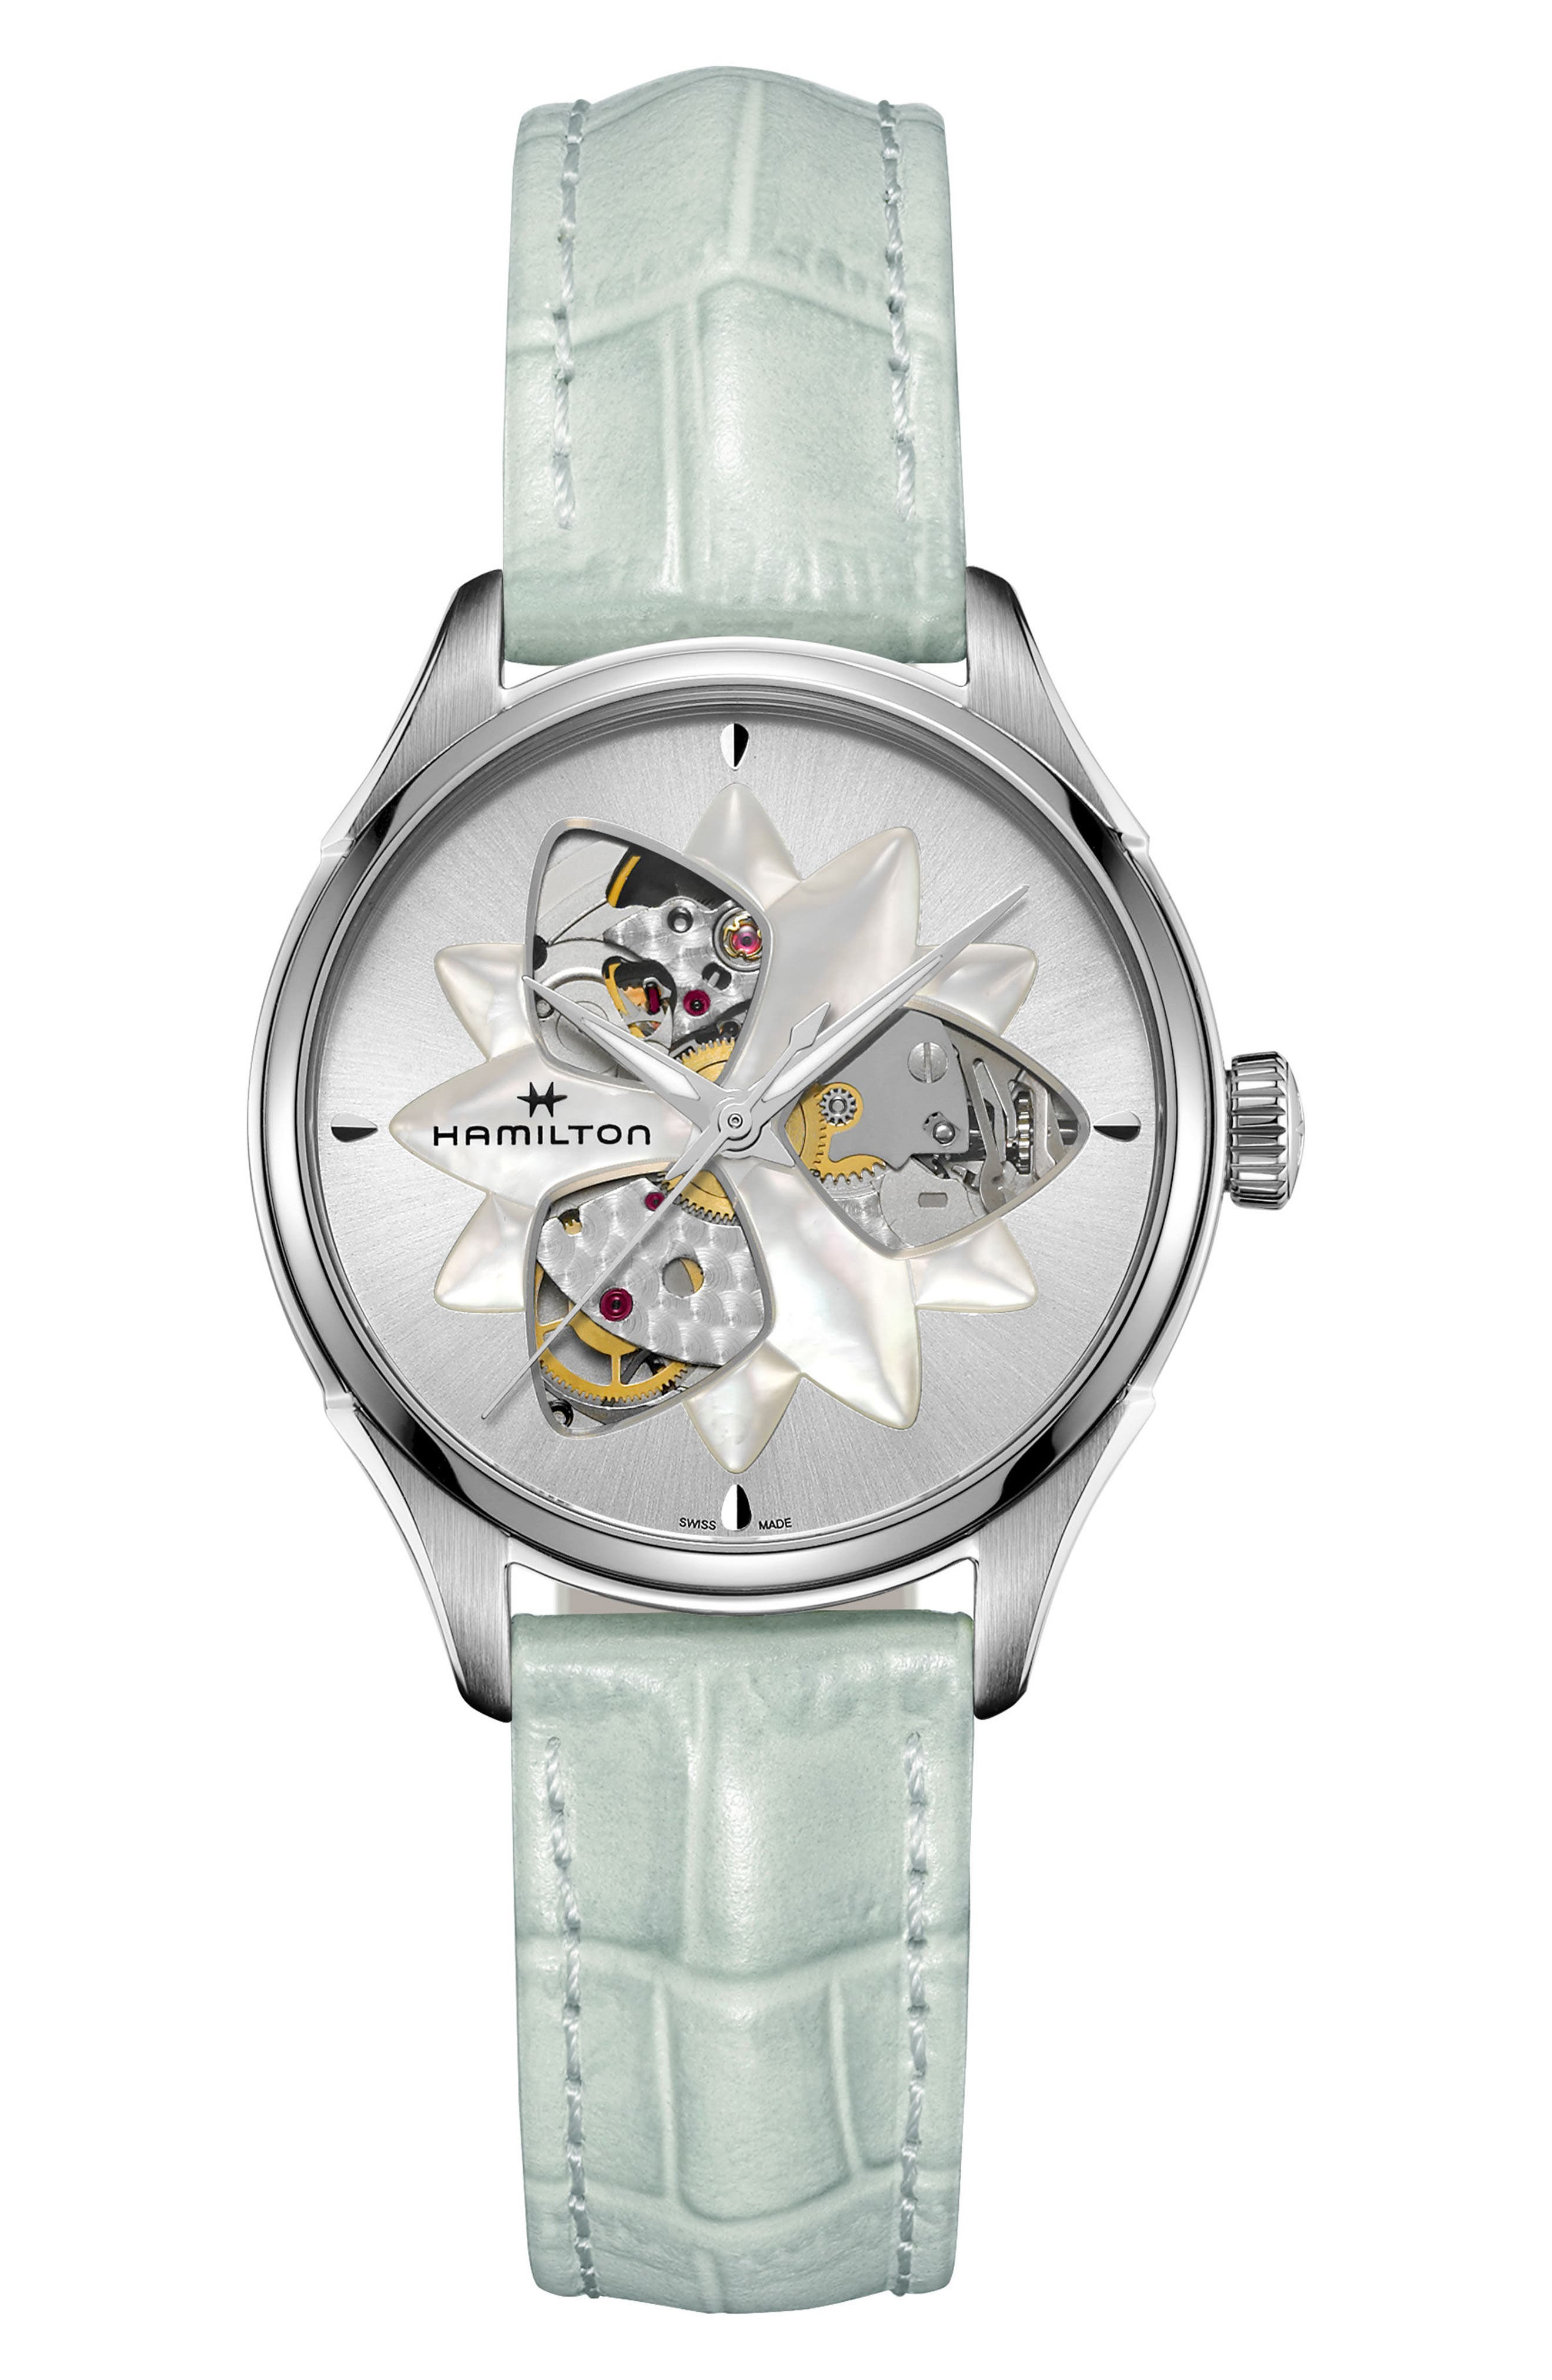 HAMILTON JAZZMASTER OPEN HEART AUTOMATIC LEATHER STRAP WATCH, 34MM